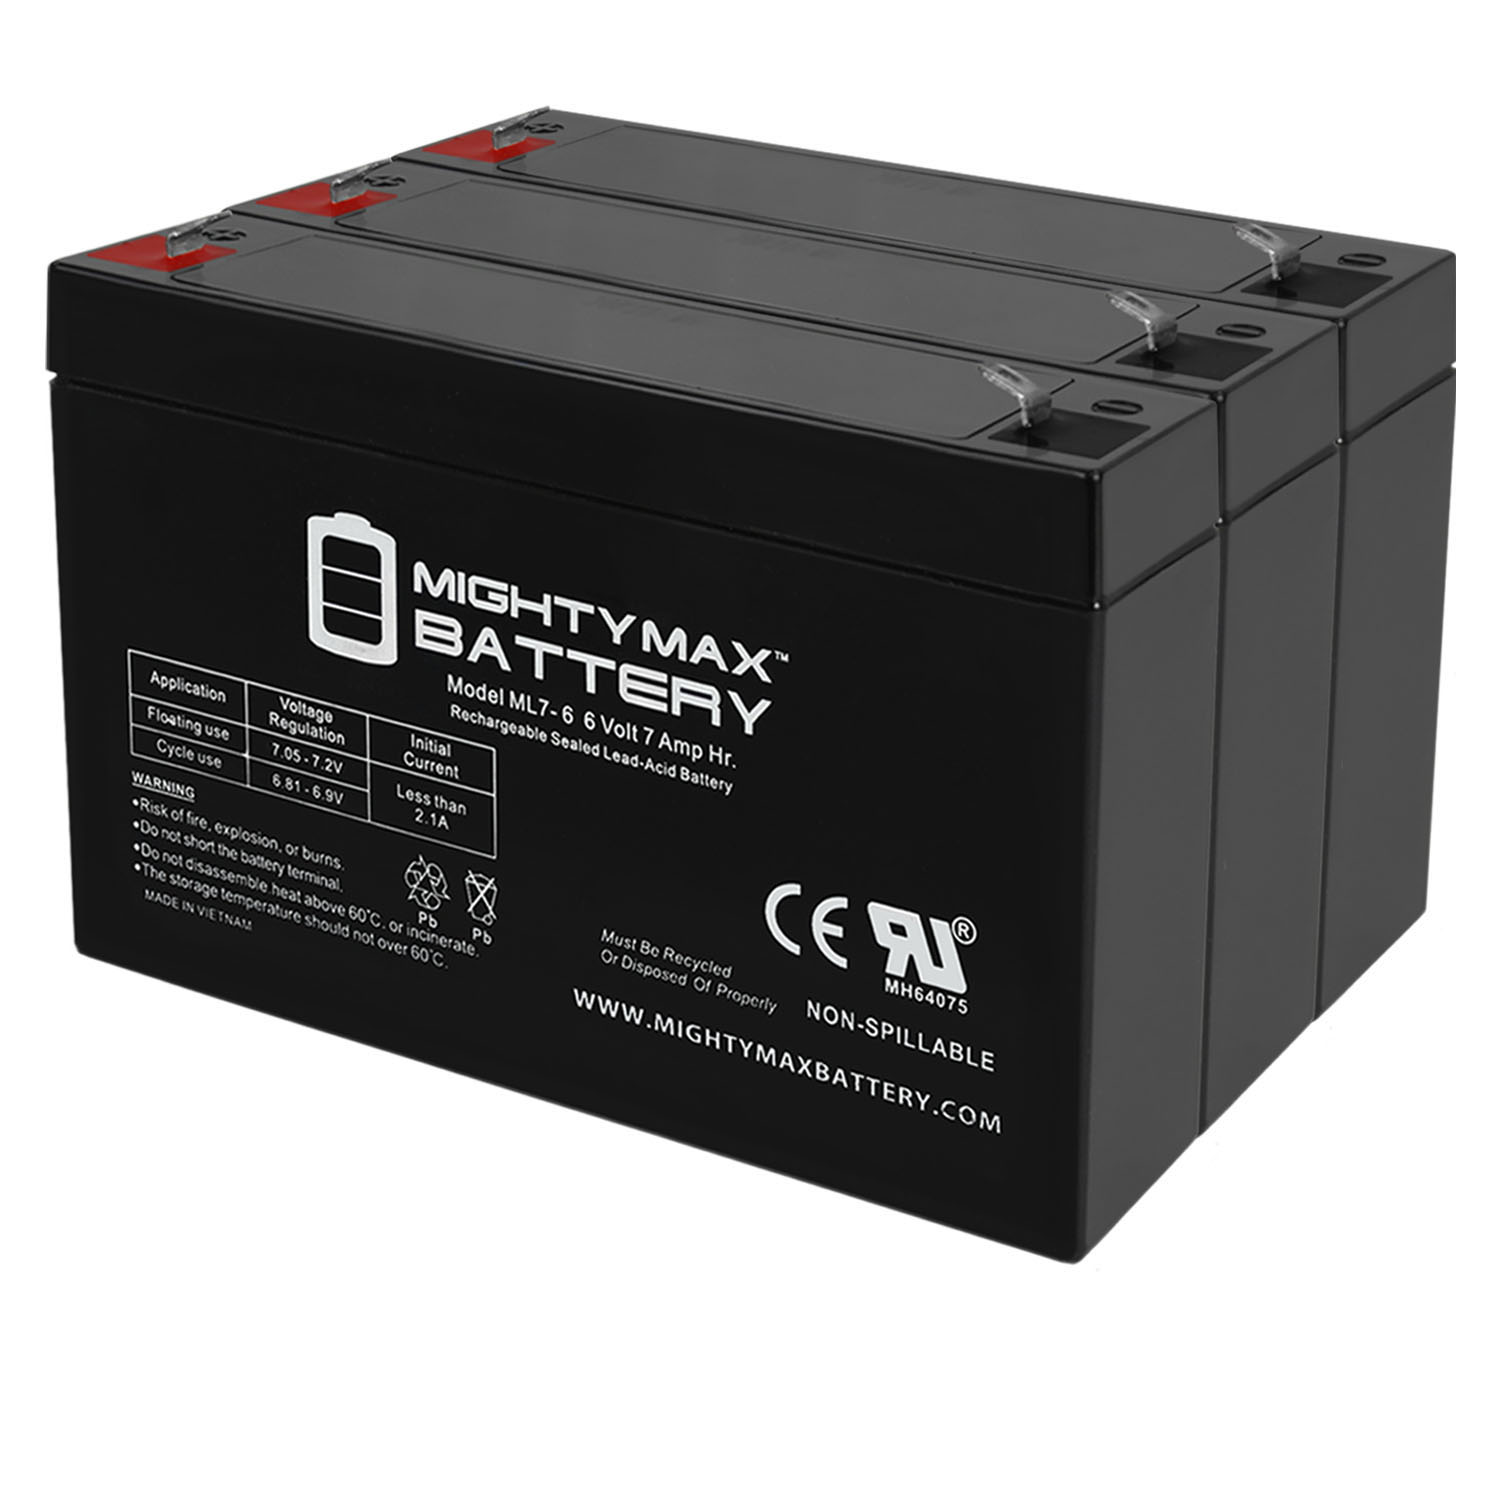 6v 7000 mAh UPS Battery Replacement for GS Portalac PE6V7F1 - 3 Pack